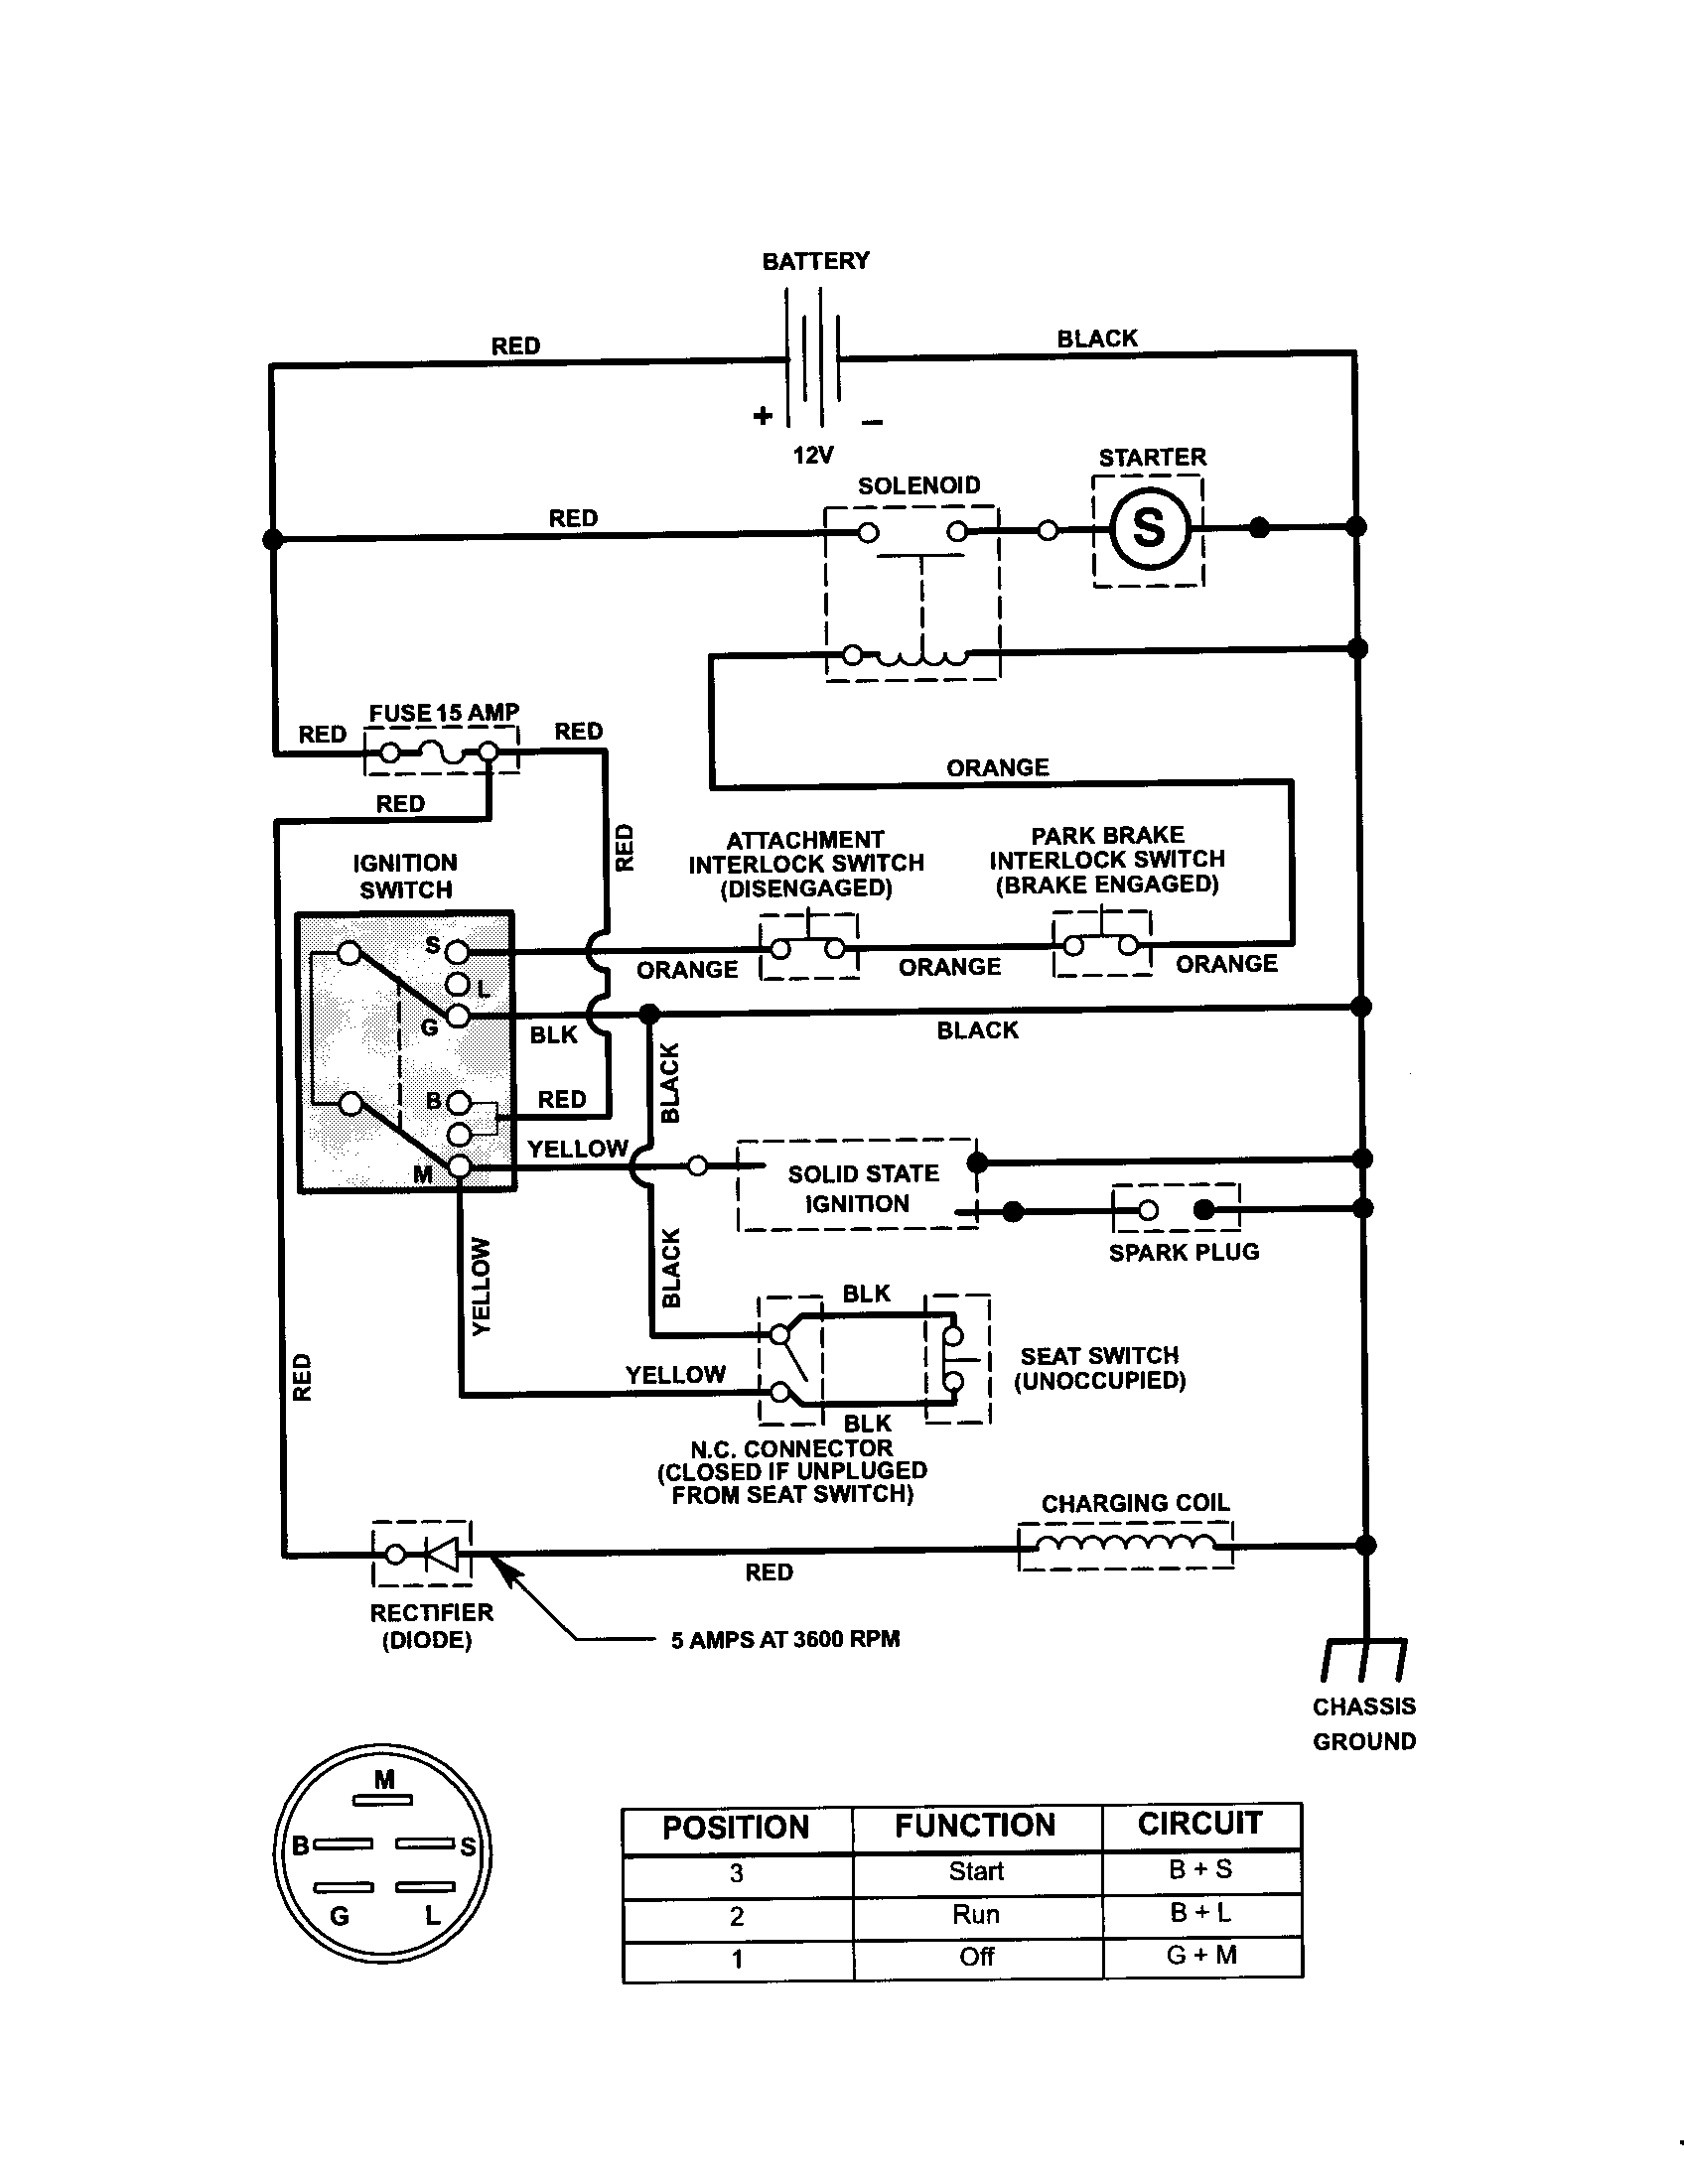 1b4fc64e2bcb7b381848942ff5c84dce craftsman riding mower electrical diagram pictures of craftsman craftsman lawn tractor wiring diagram at alyssarenee.co